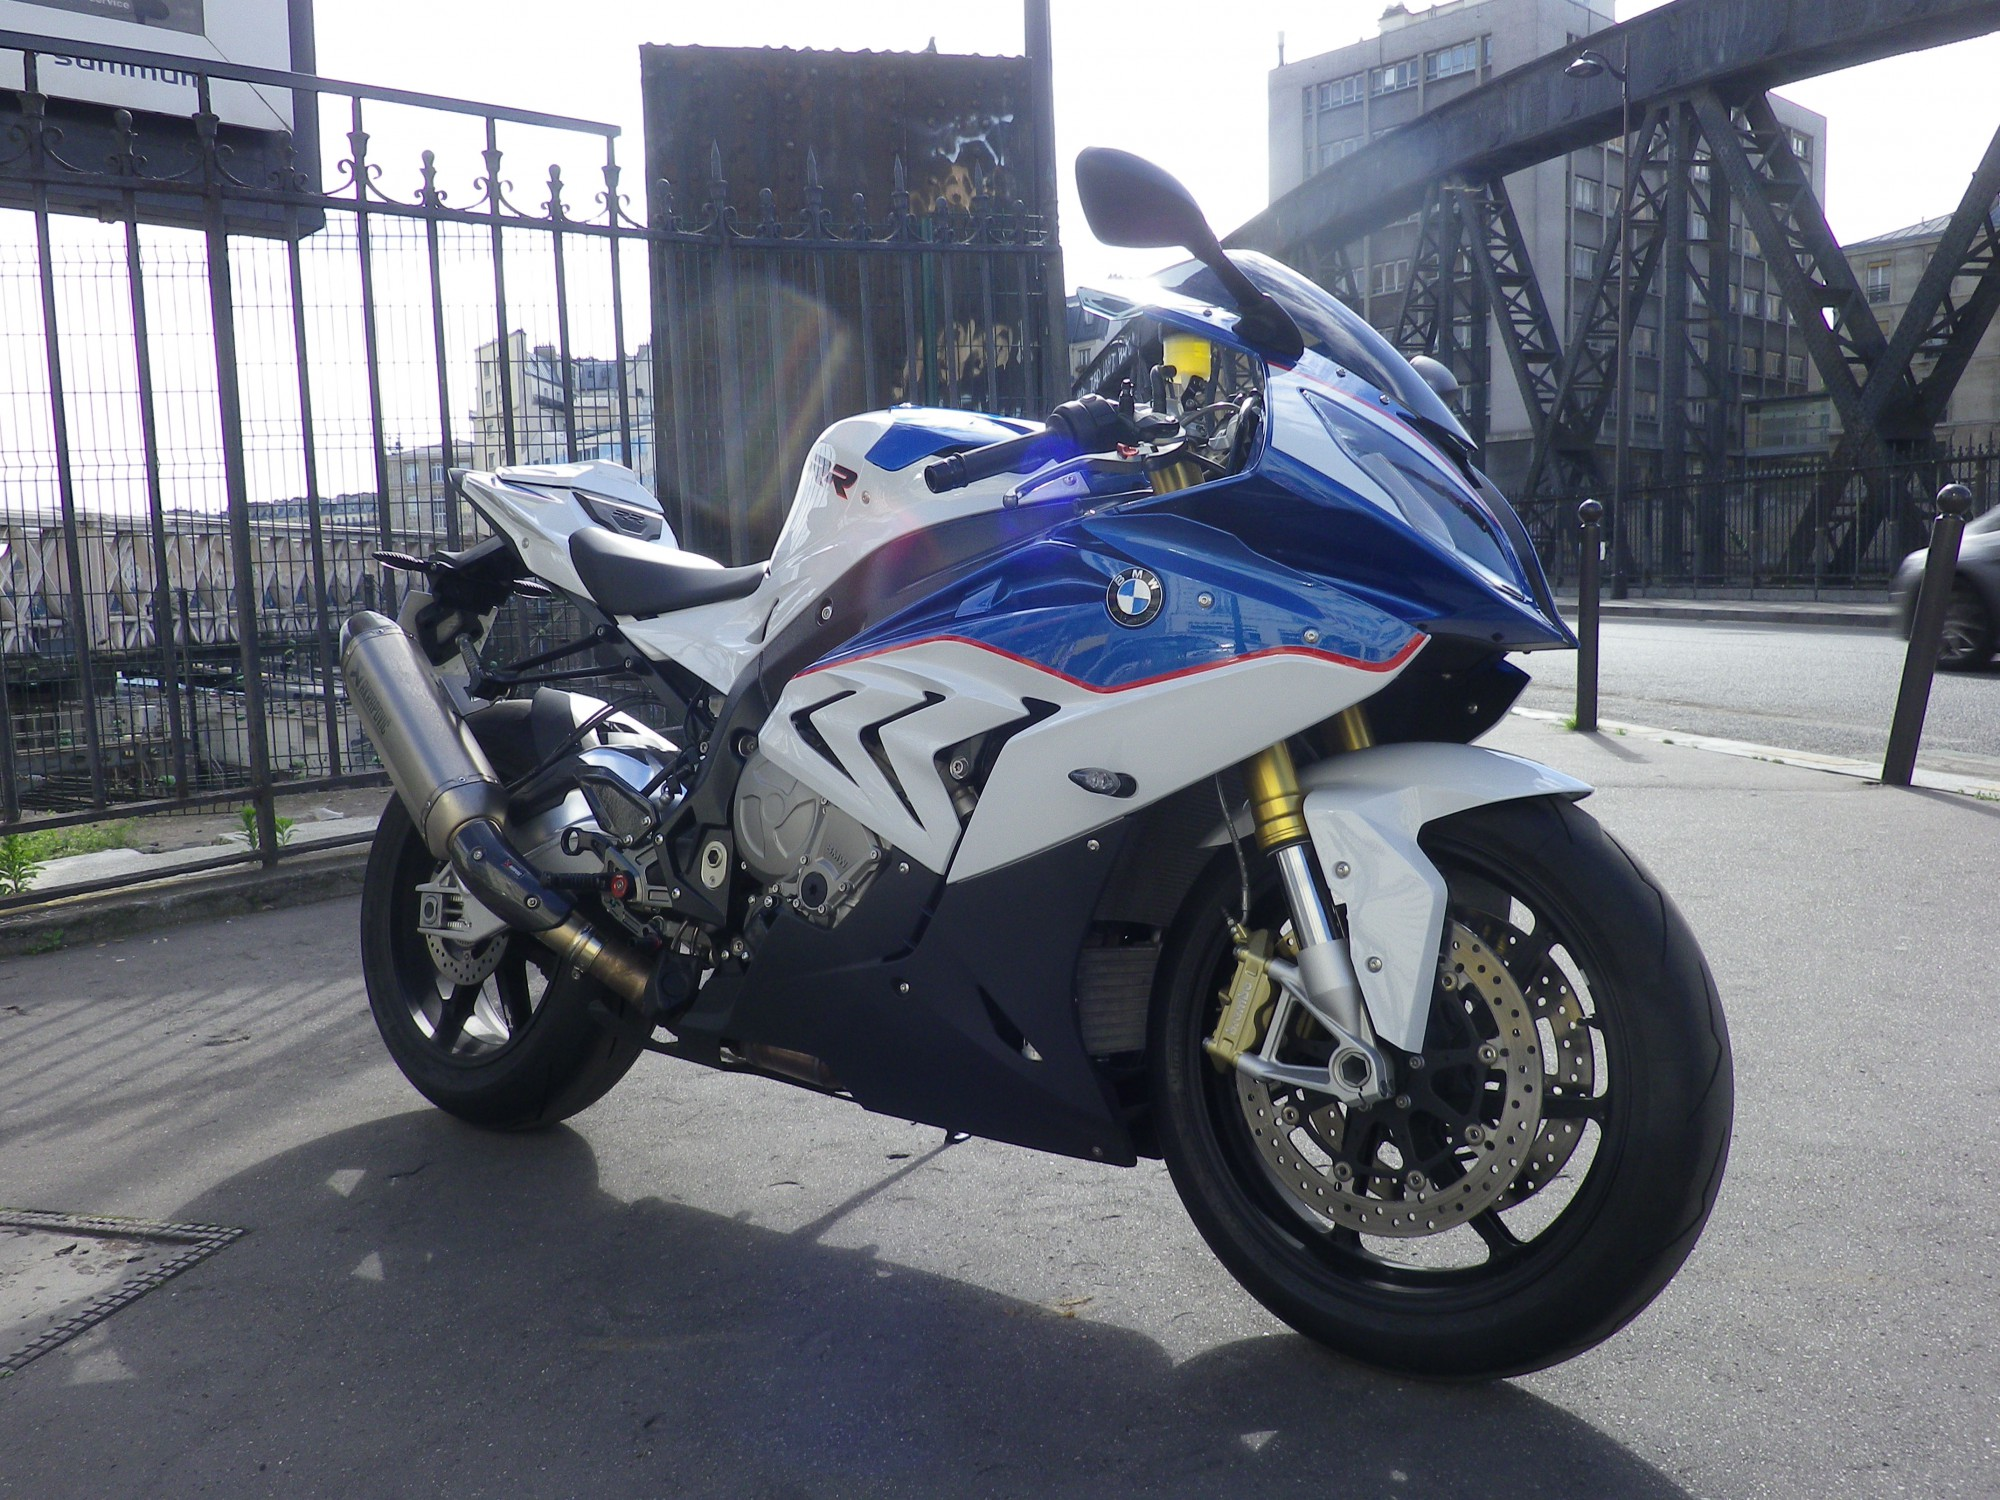 BMW 998 S1000RR REPLICA ABS/DTC/SHIFTER